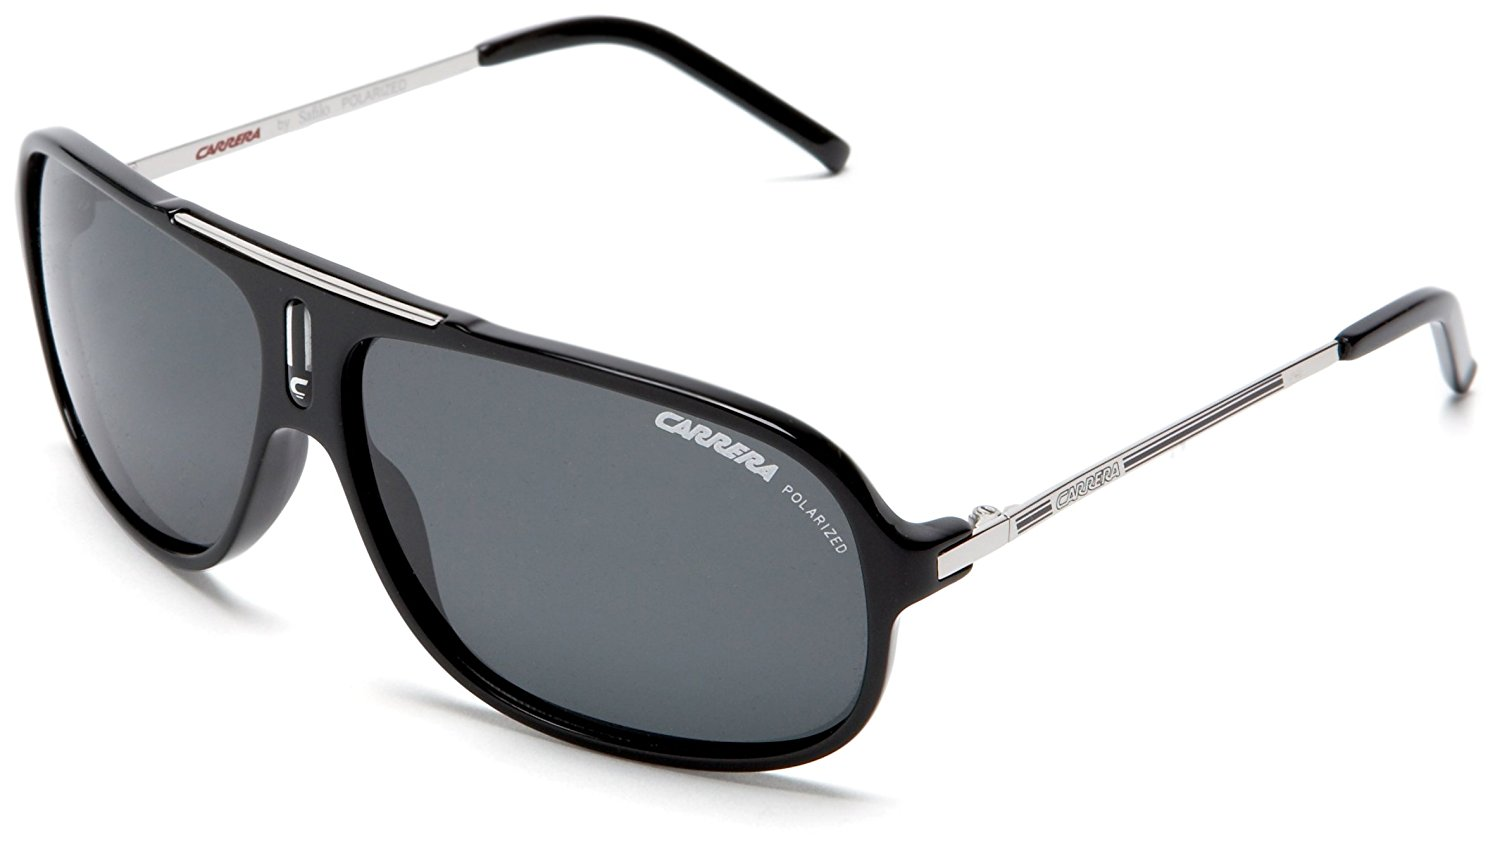 Black And White Sunglasses | Free download best Black And White ...